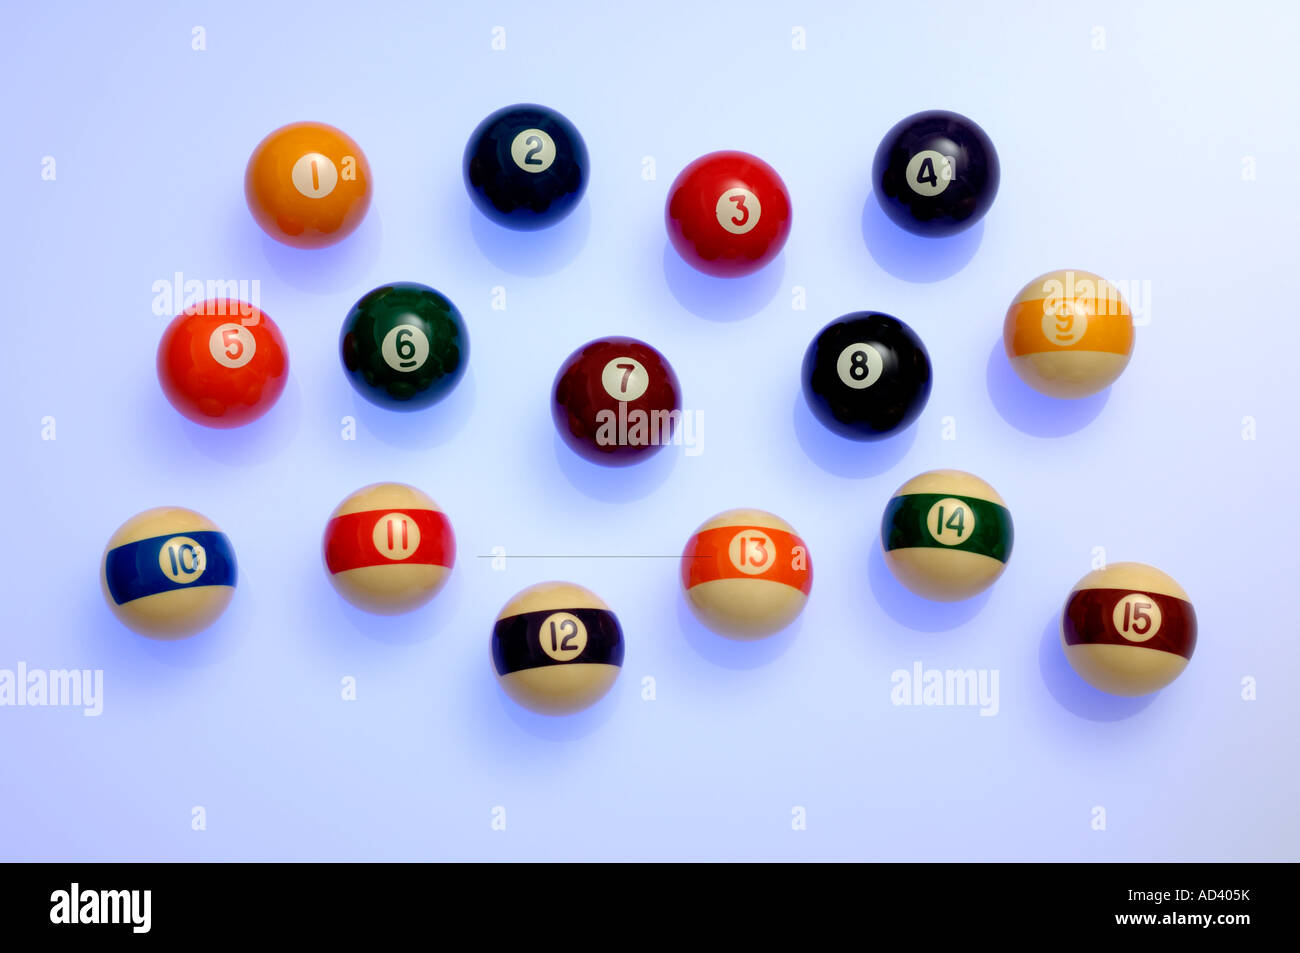 Pool balls numbered one to fifteen - Stock Image